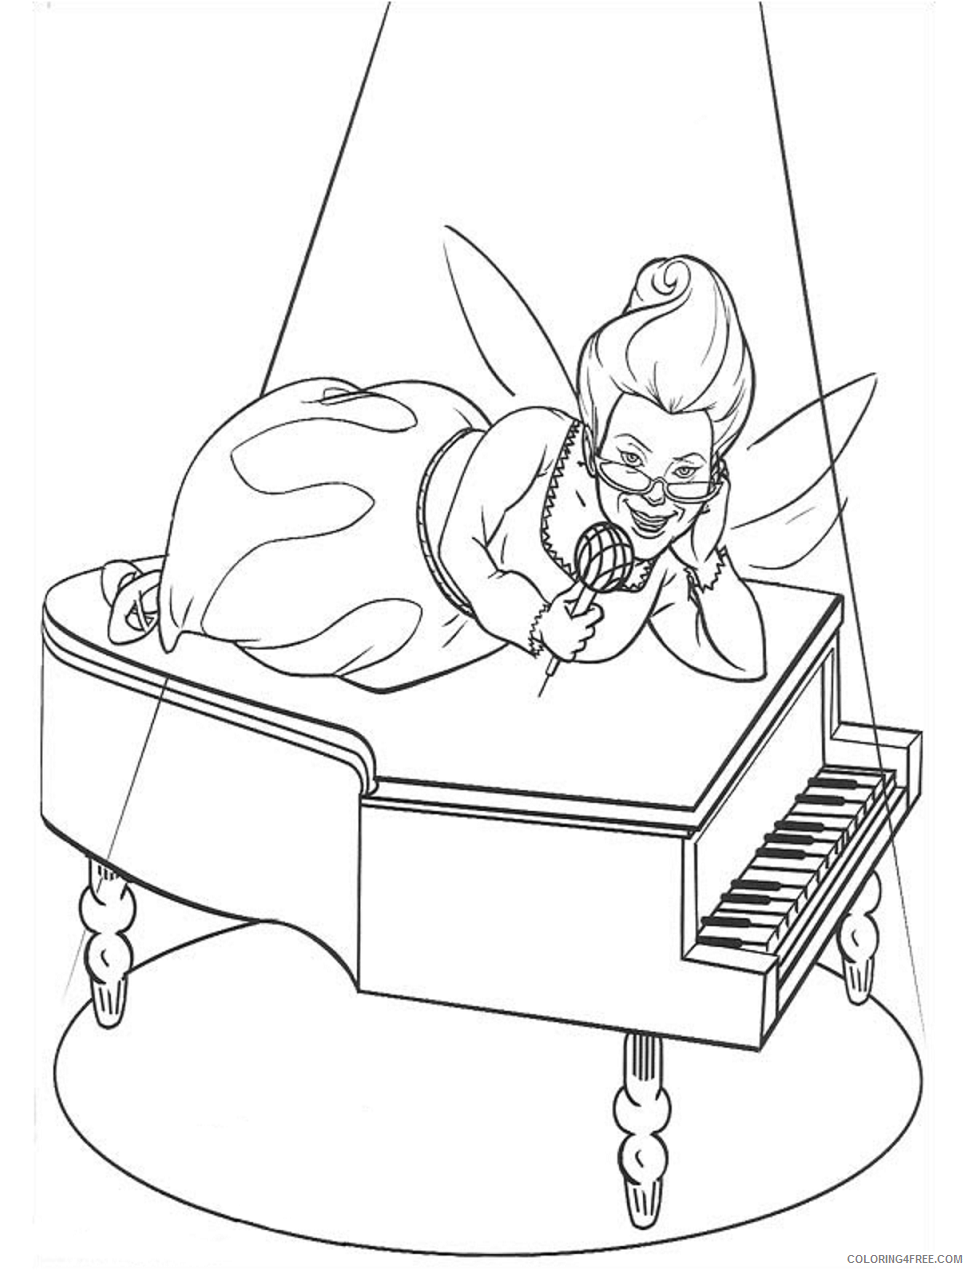 Fairy Coloring Pages fairy_on_piano a4 Printable 2021 2296 Coloring4free